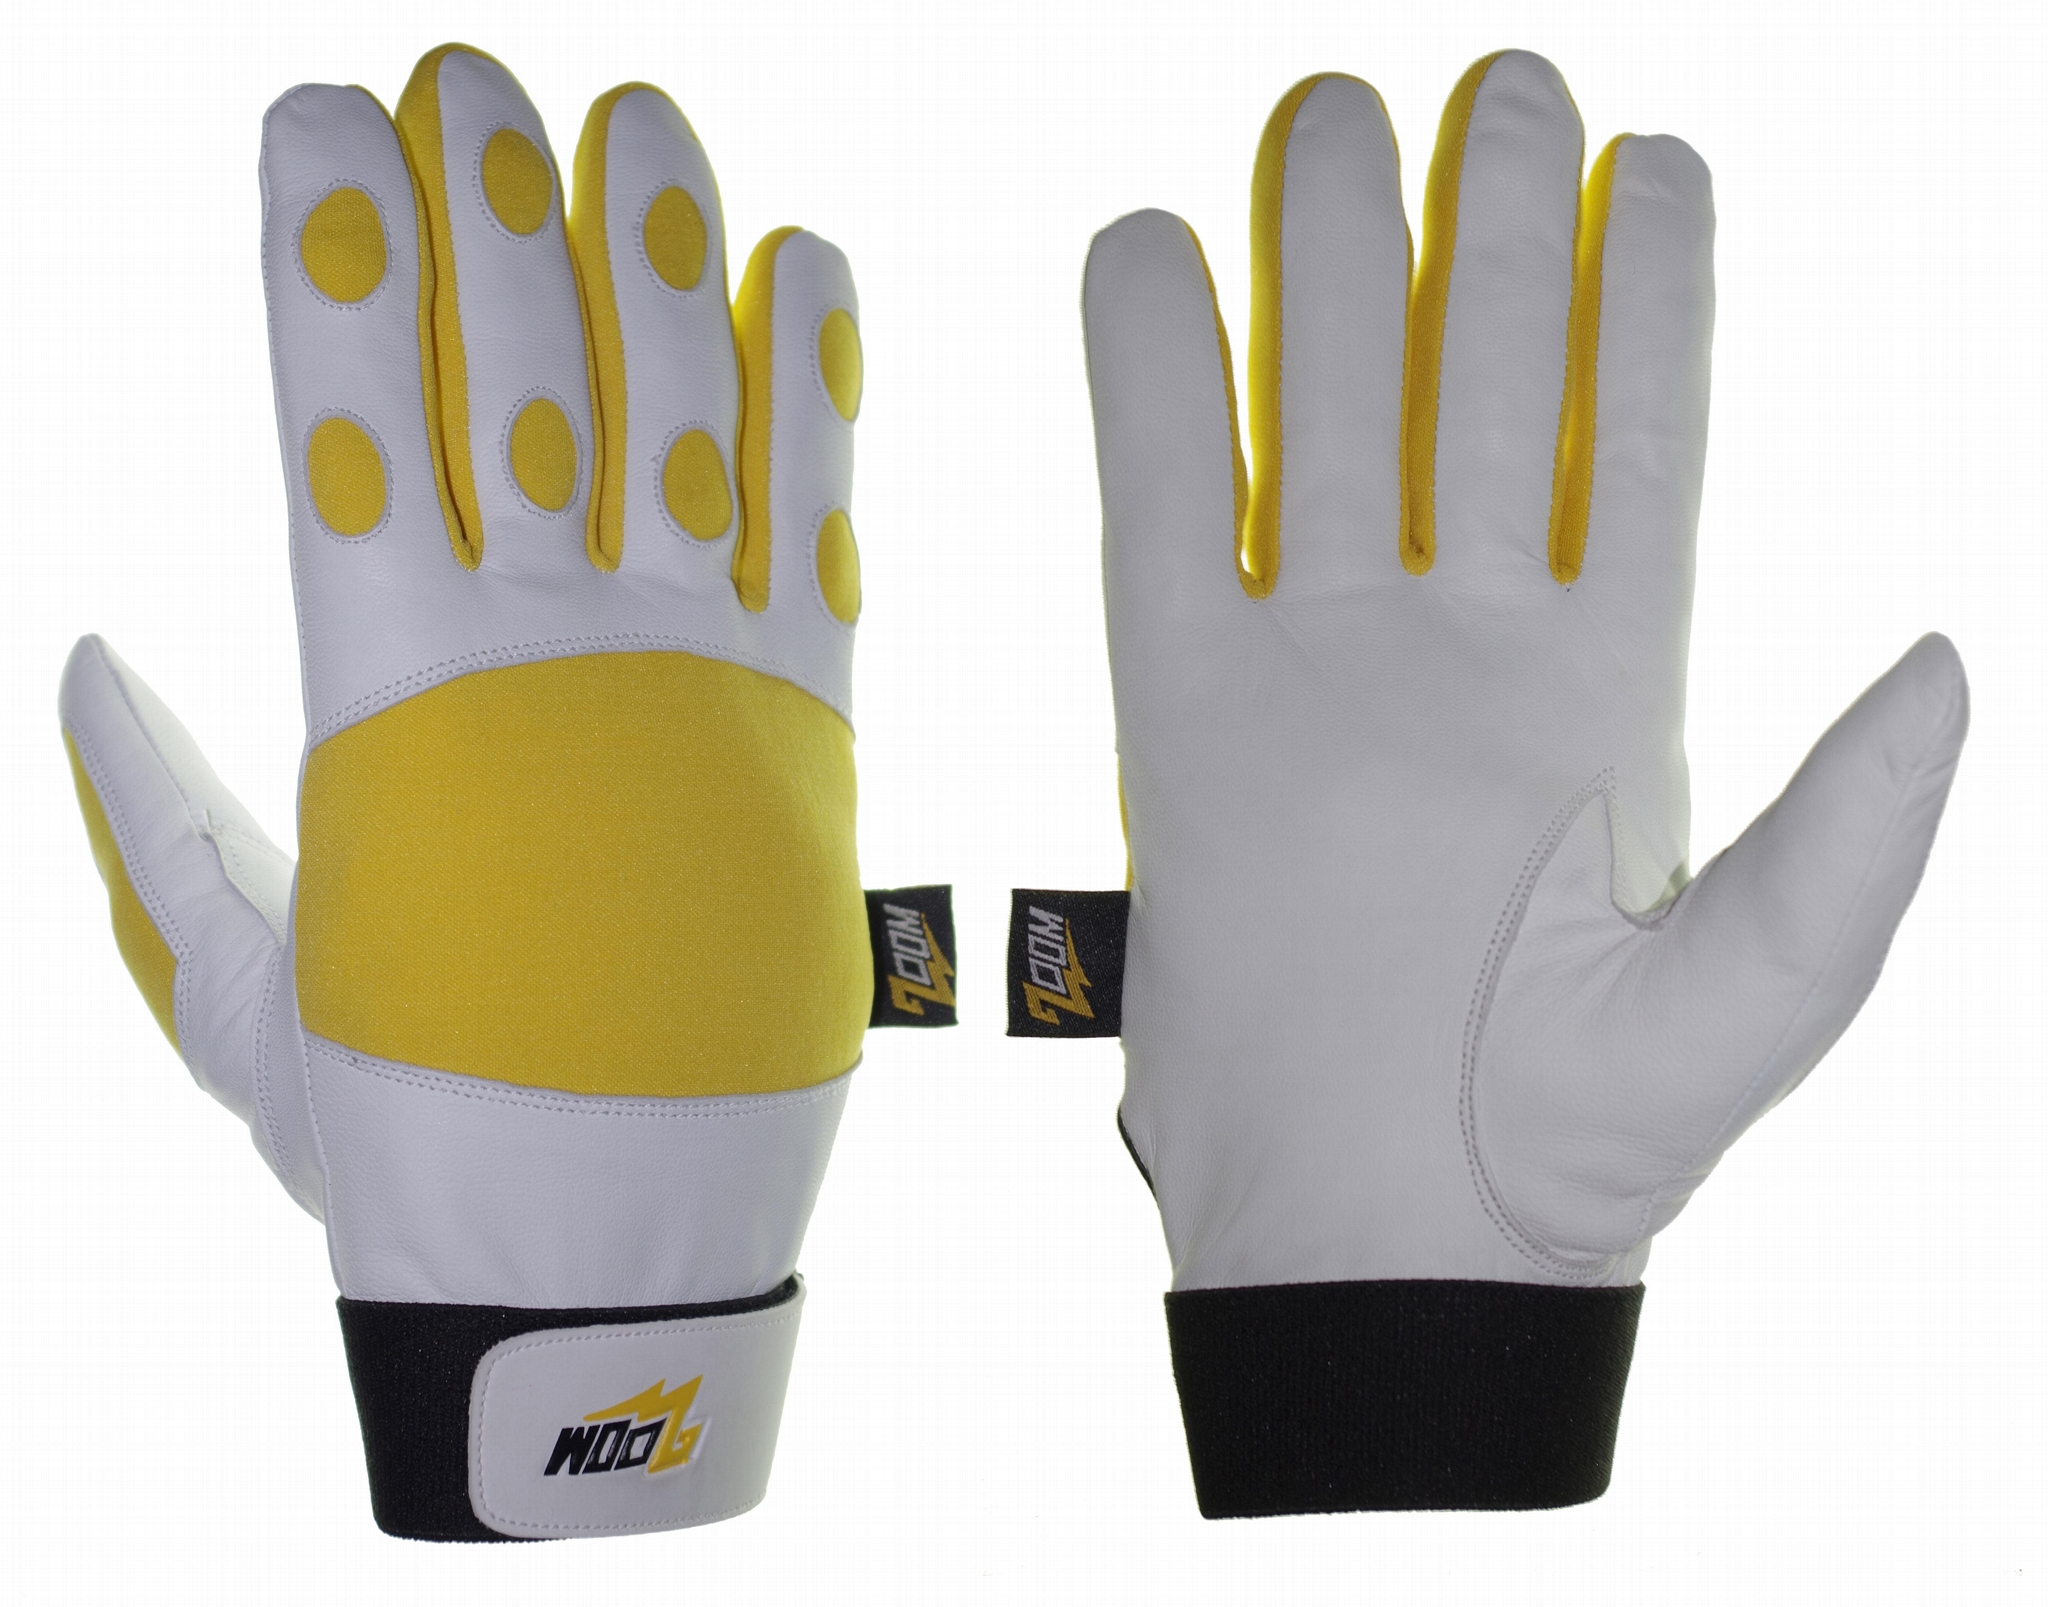 Baseball Batting Gloves 4